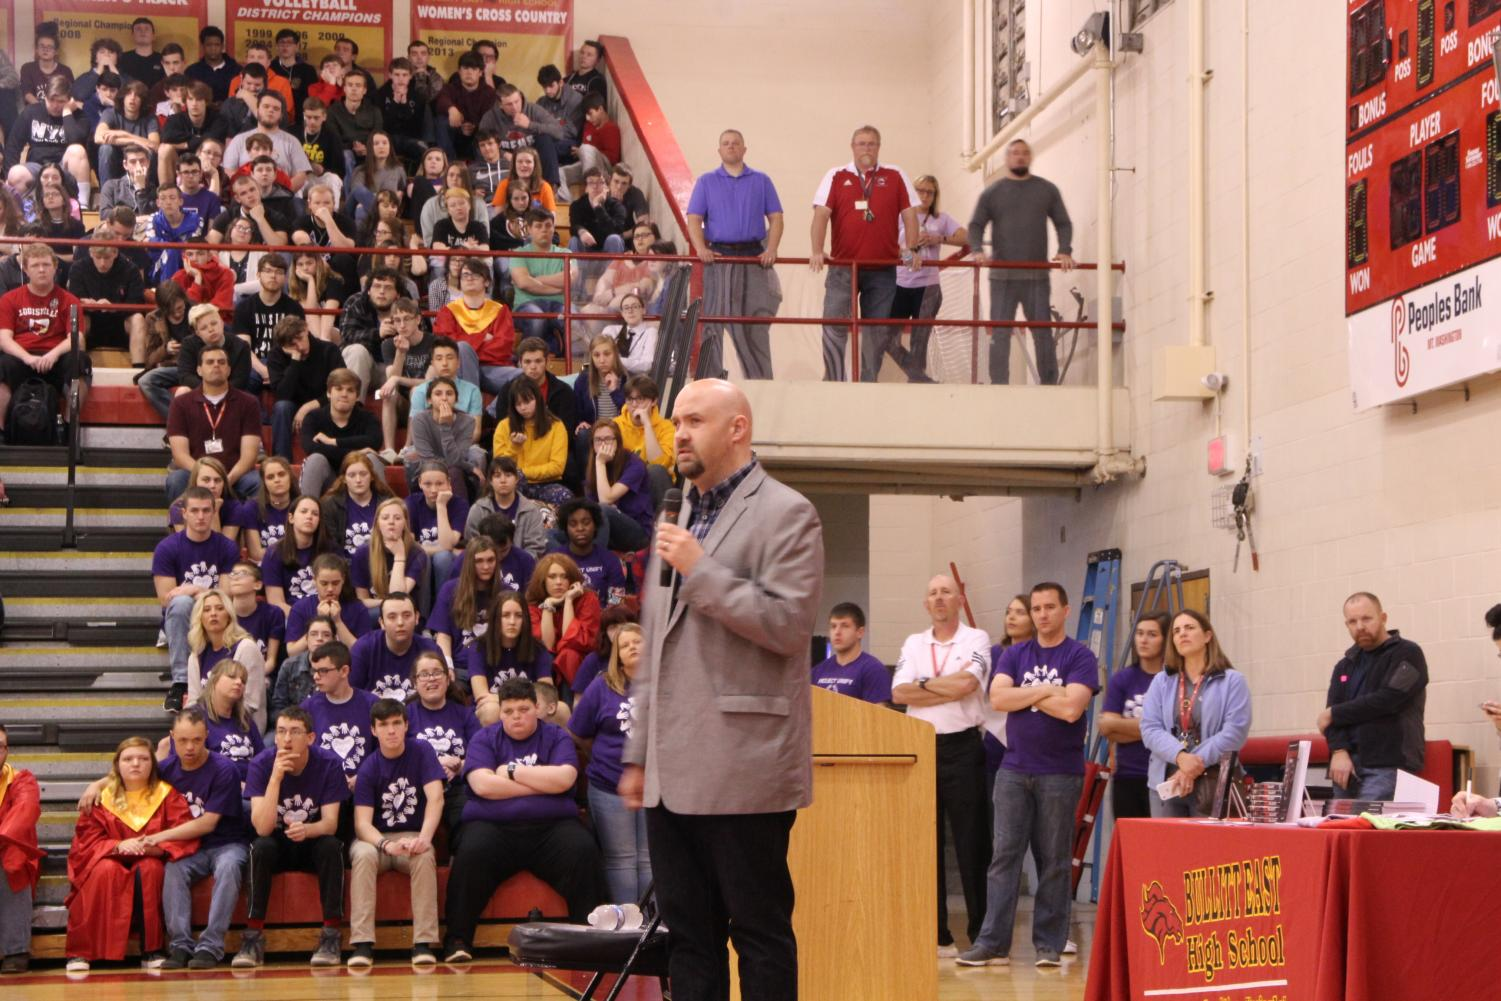 Students gathered in the gym on Friday for an amazing opportunity to hear a speech from a blind person. The speech was full of stories and inspiring comments from college professor Travis Freeman.